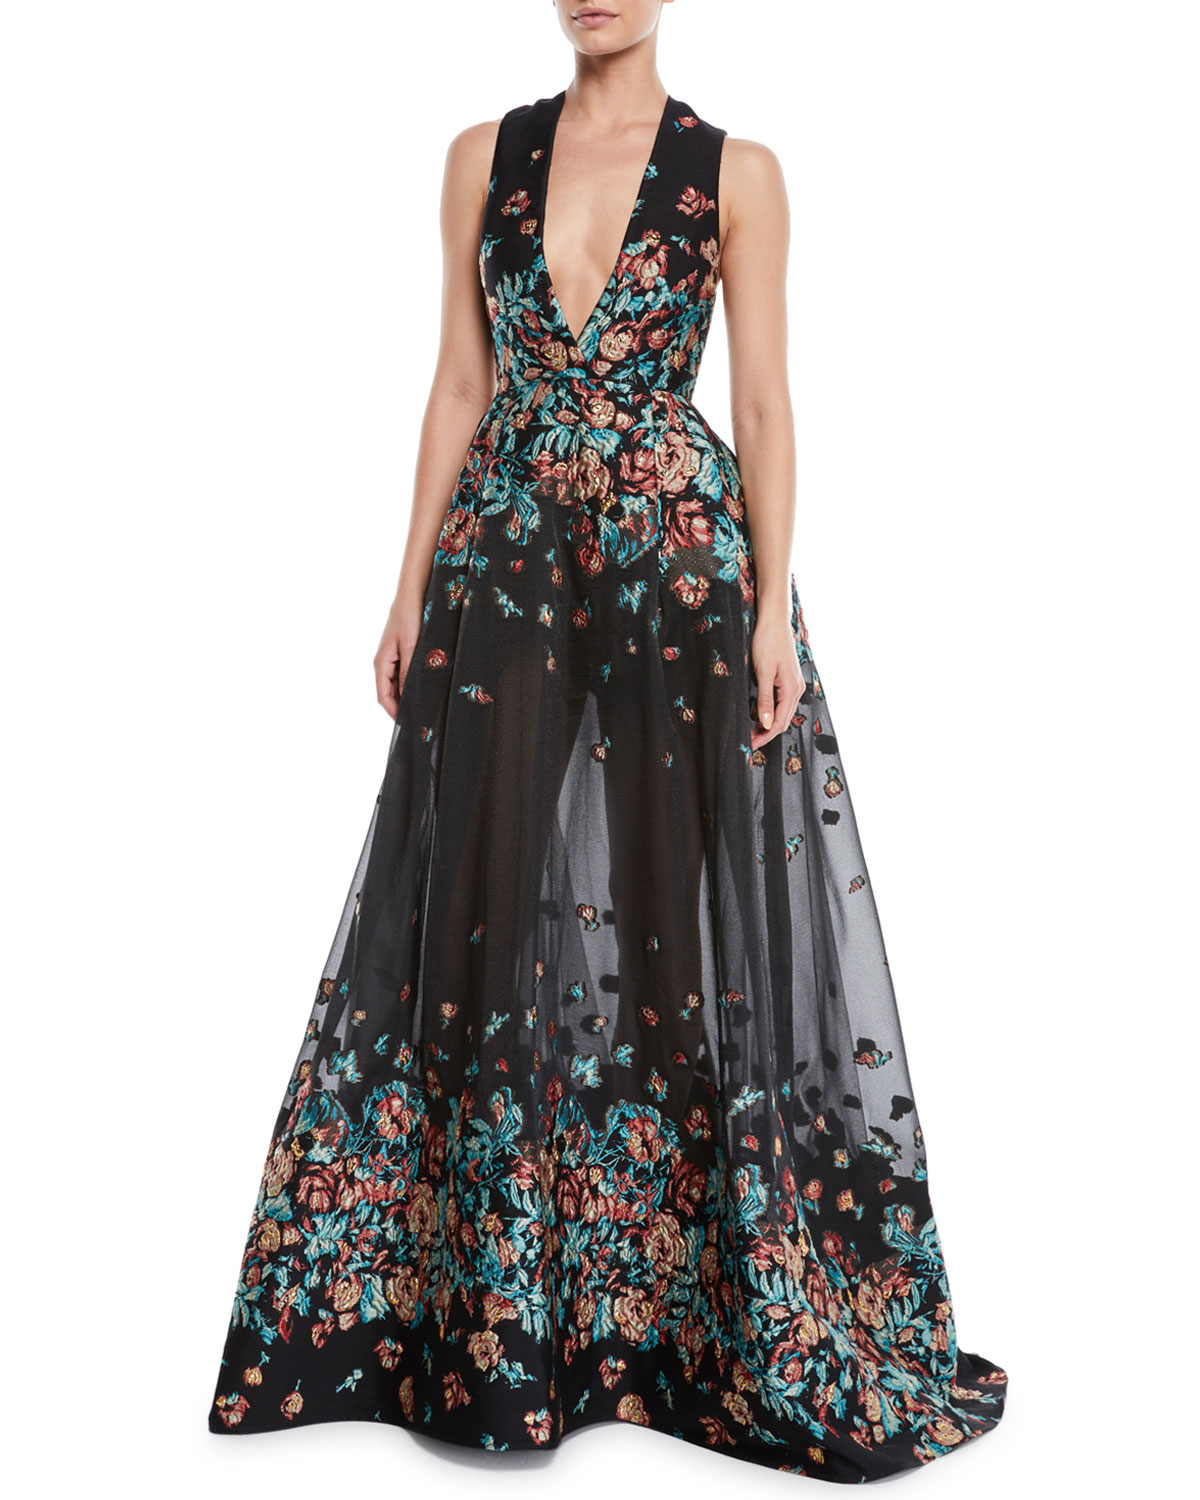 DEEP-V SLEEVELESS FLORAL-JACQUARD FIL COUPE EVENING GOWN